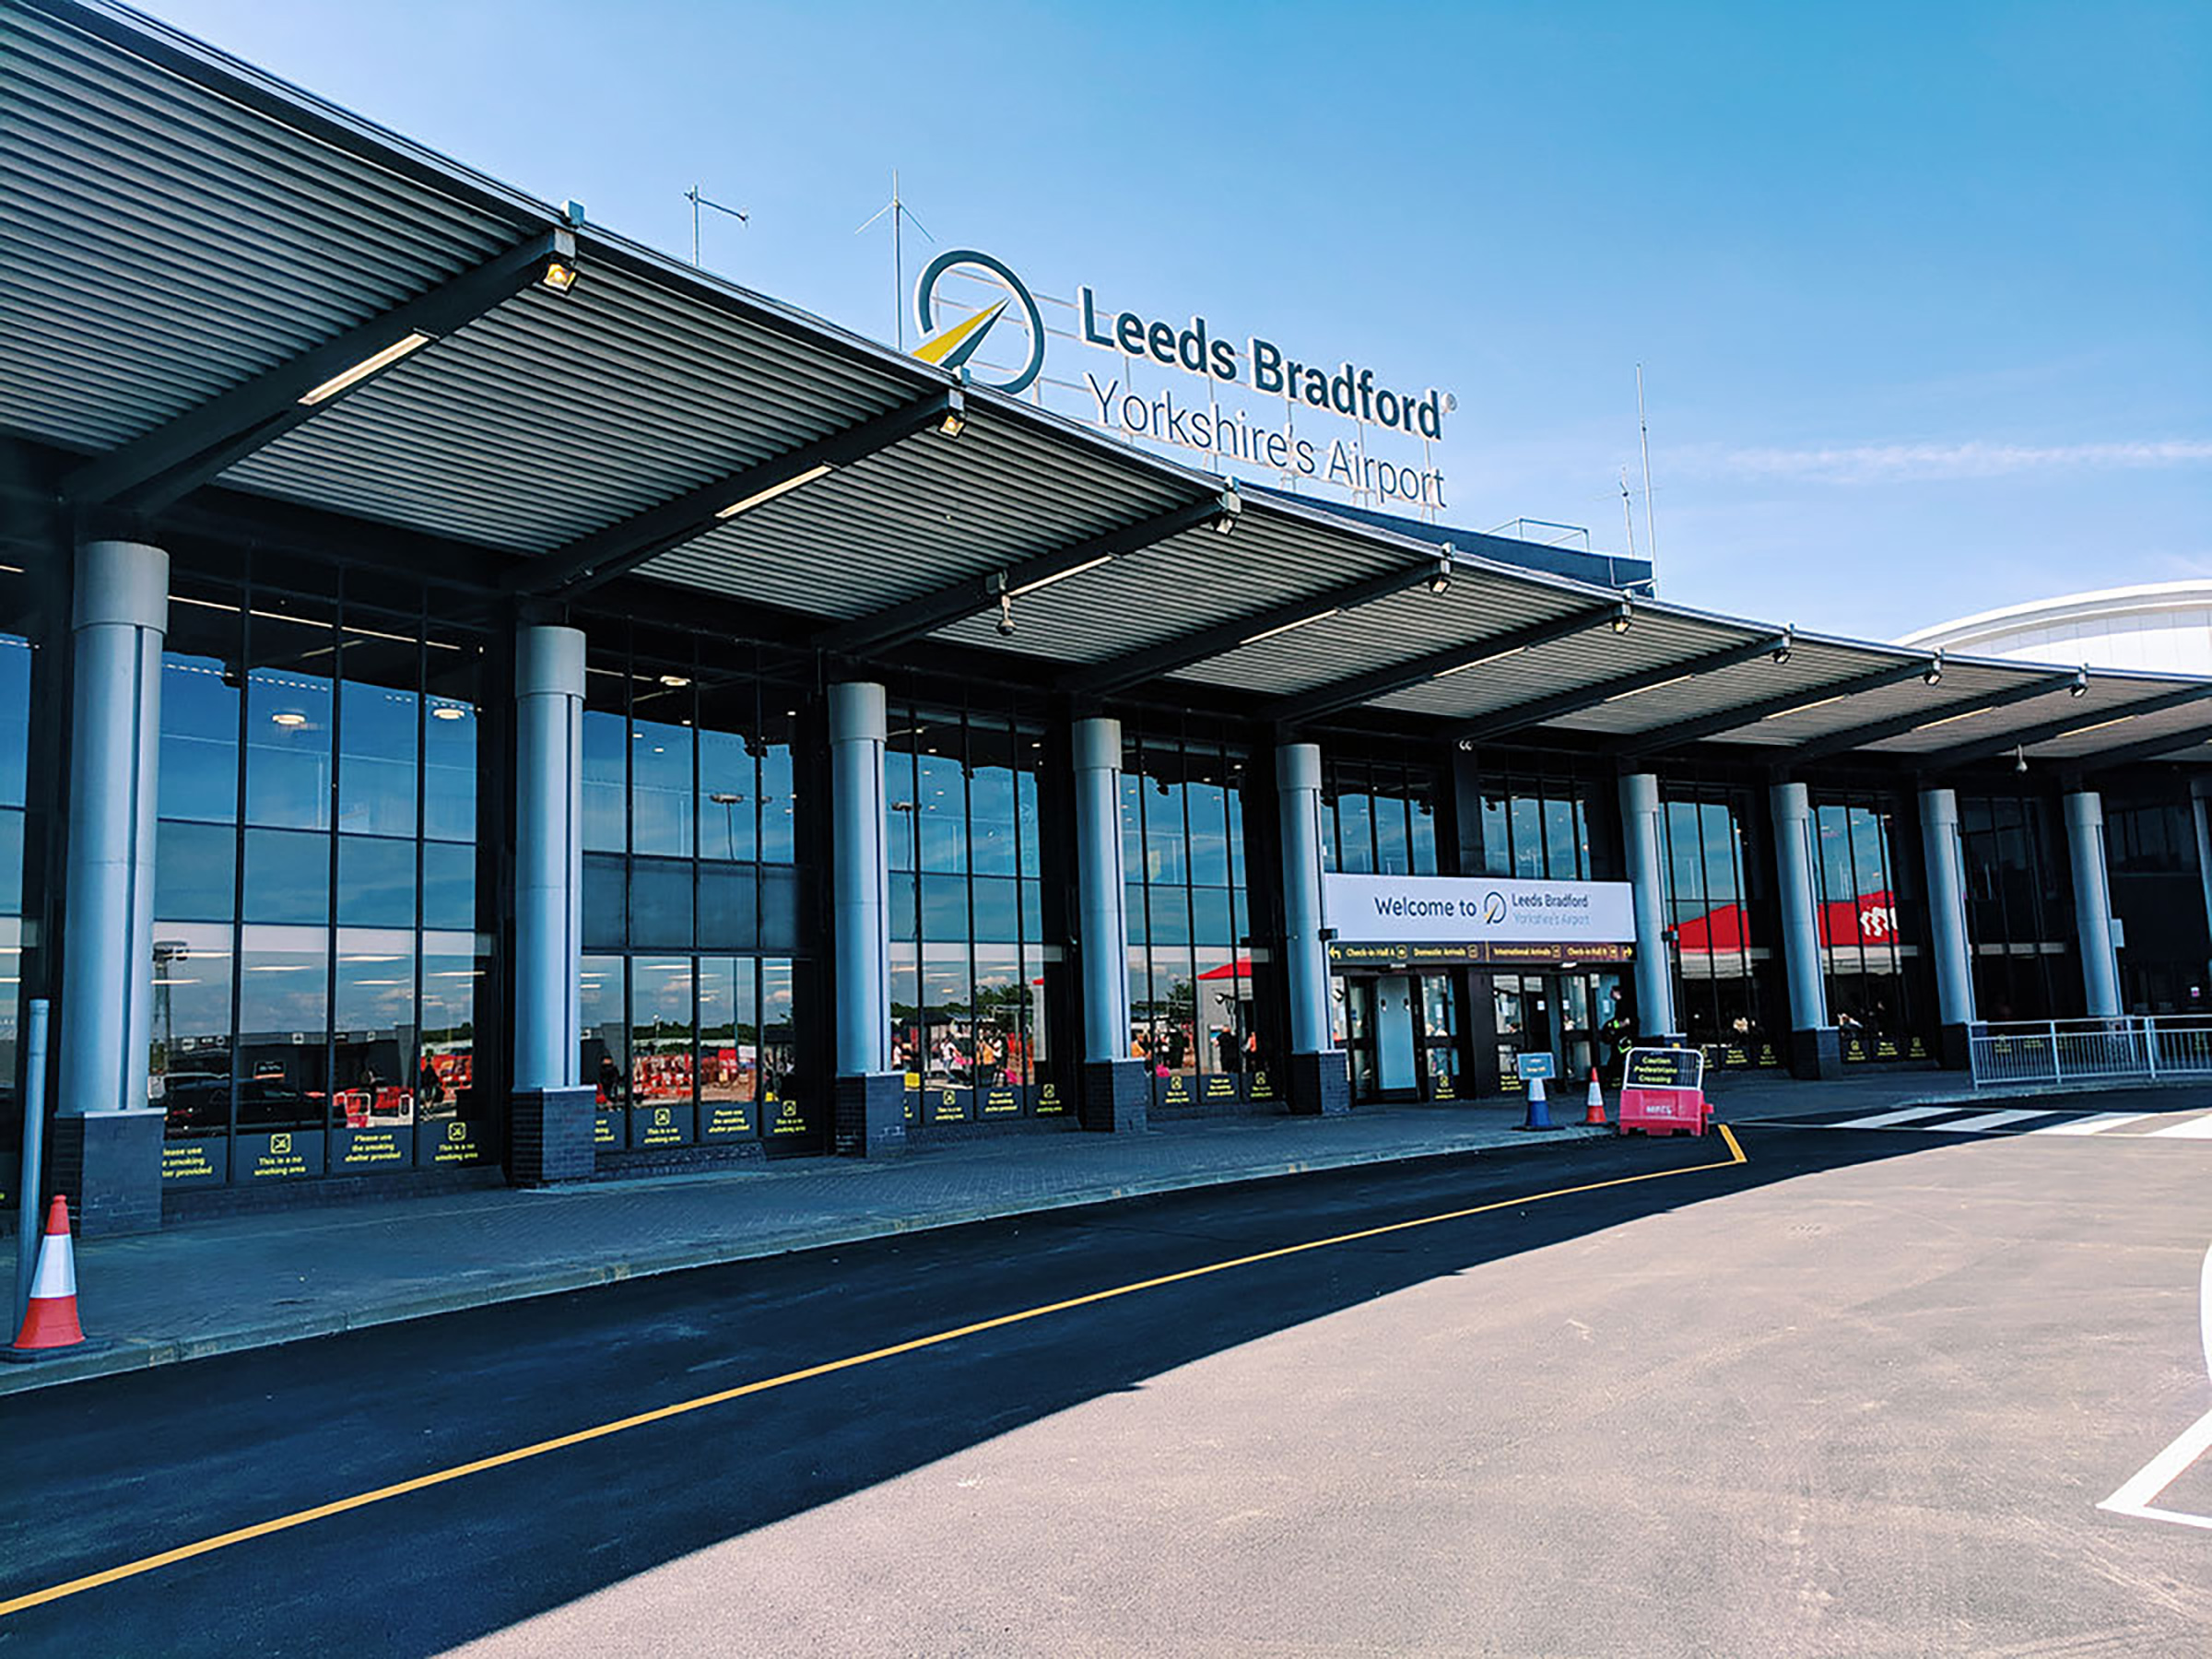 Travel to Leeds Bradford by air